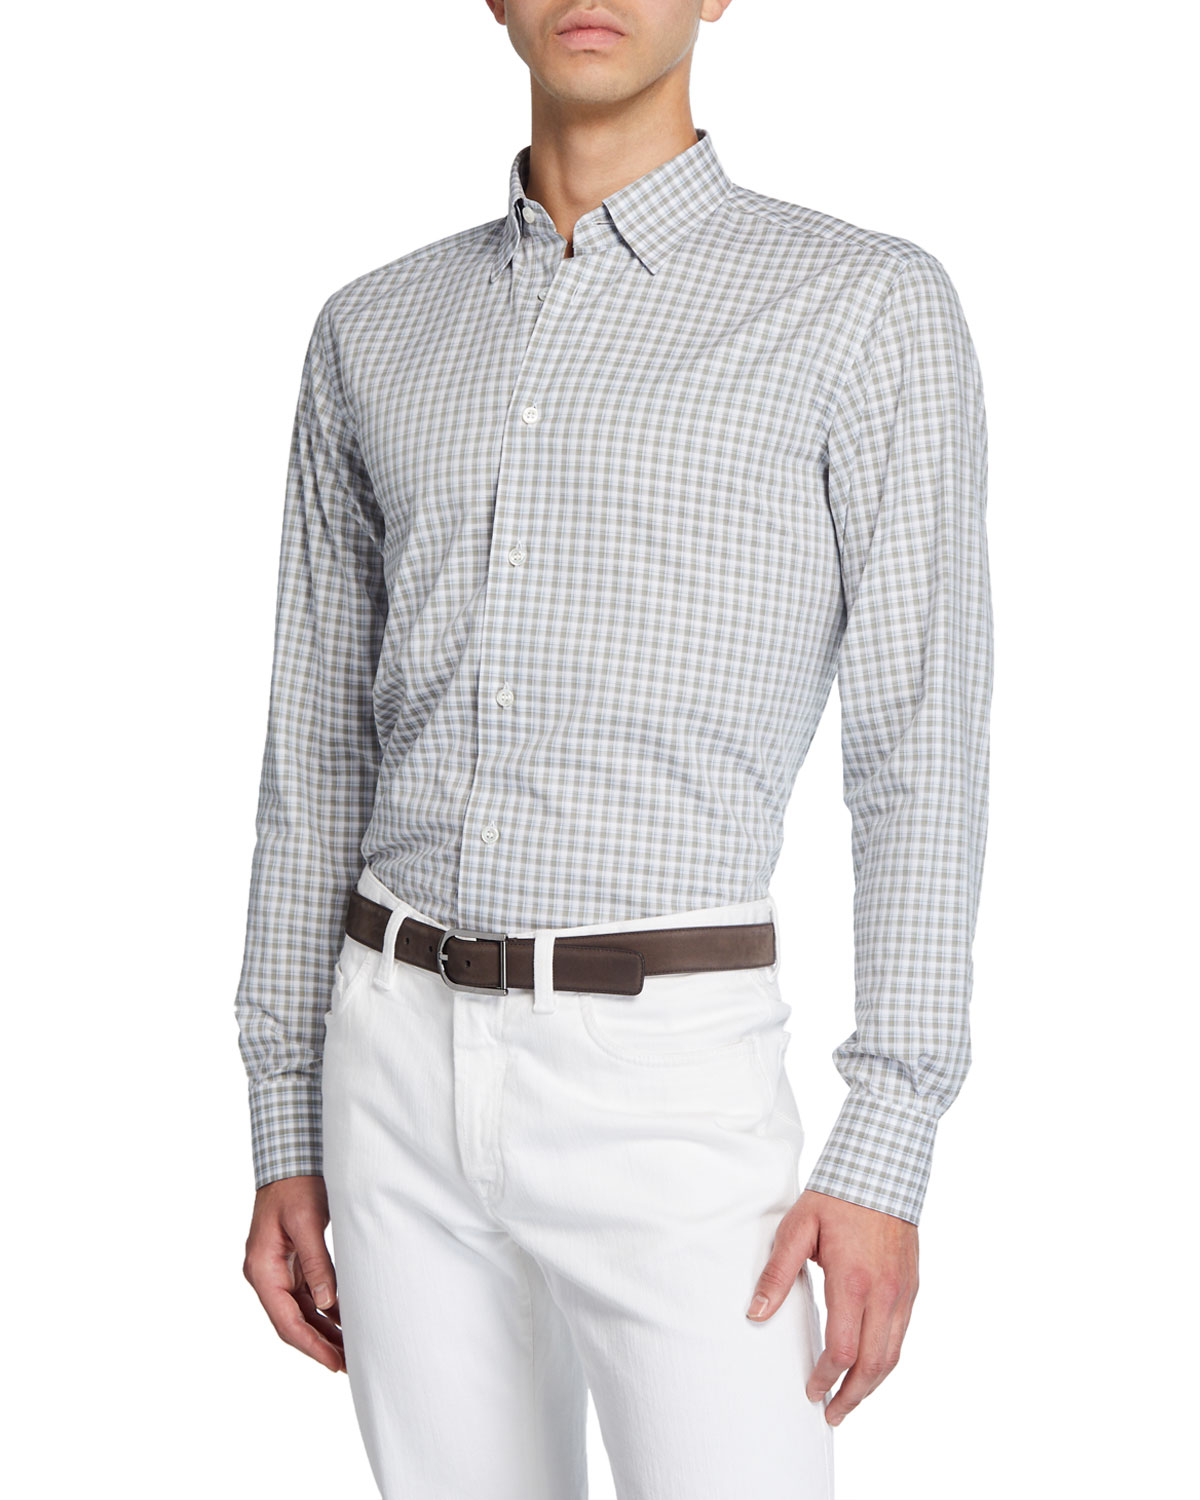 Brioni Men's Grid Check Cotton Dress Shirt